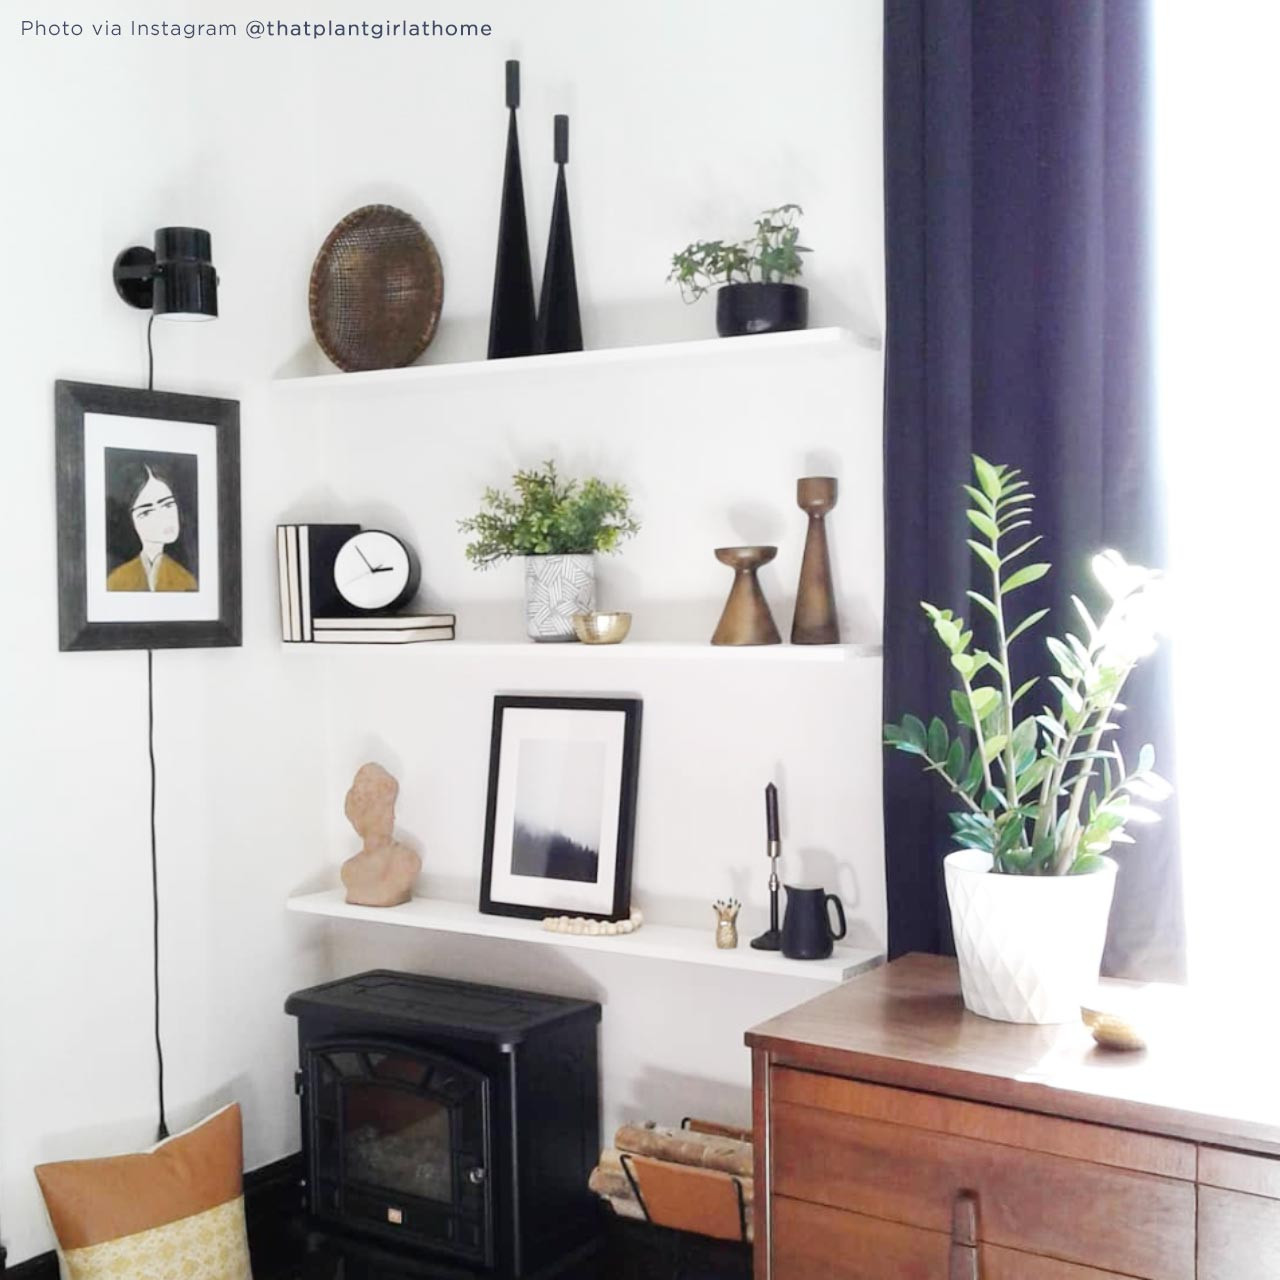 'Forest Mist I' Photography Poster from The Printed Home (Photo Credit: @thatplantgirlathome via Instagram)